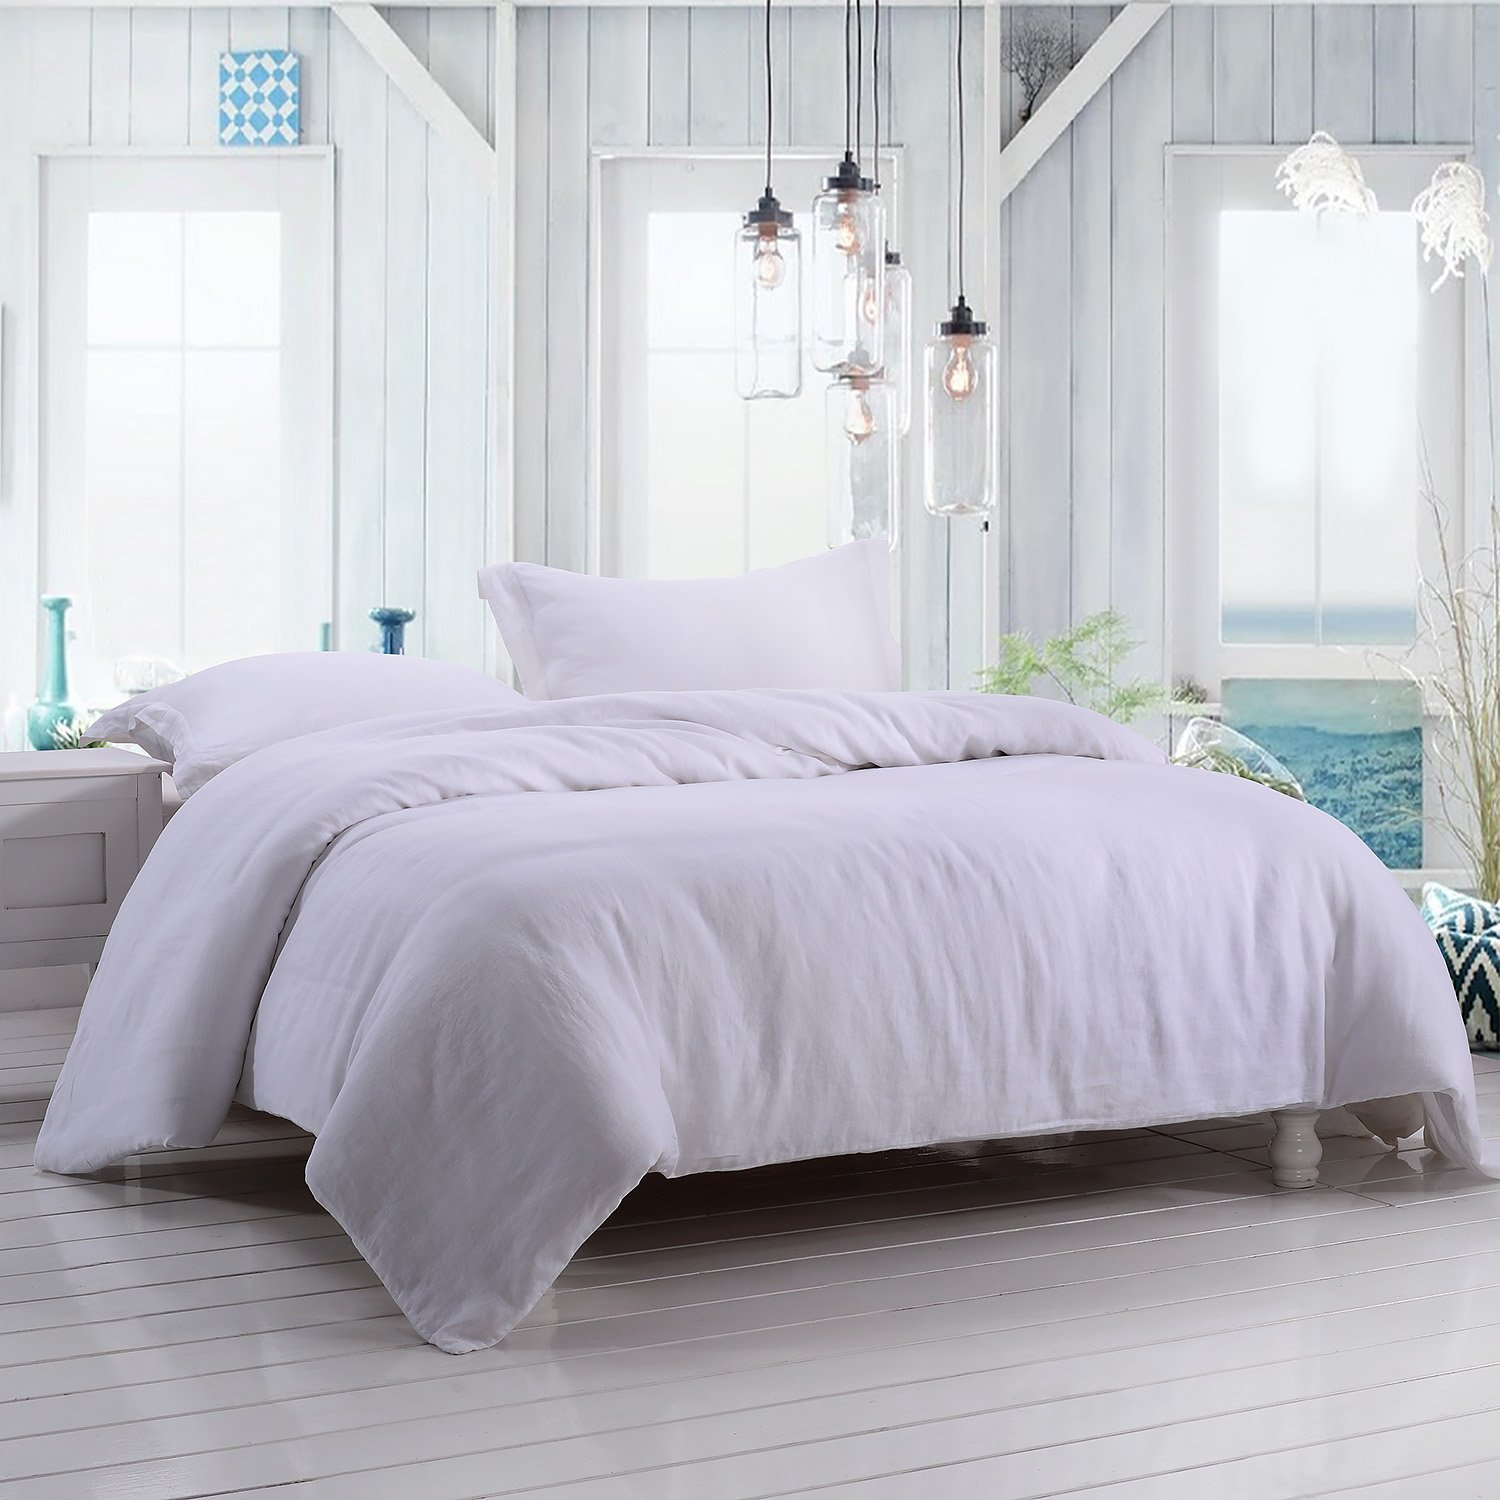 Simple&Opulence 100% Linen Stone Washed 3pcs Basic Style Solid Duvet Cover Set (Full, White)